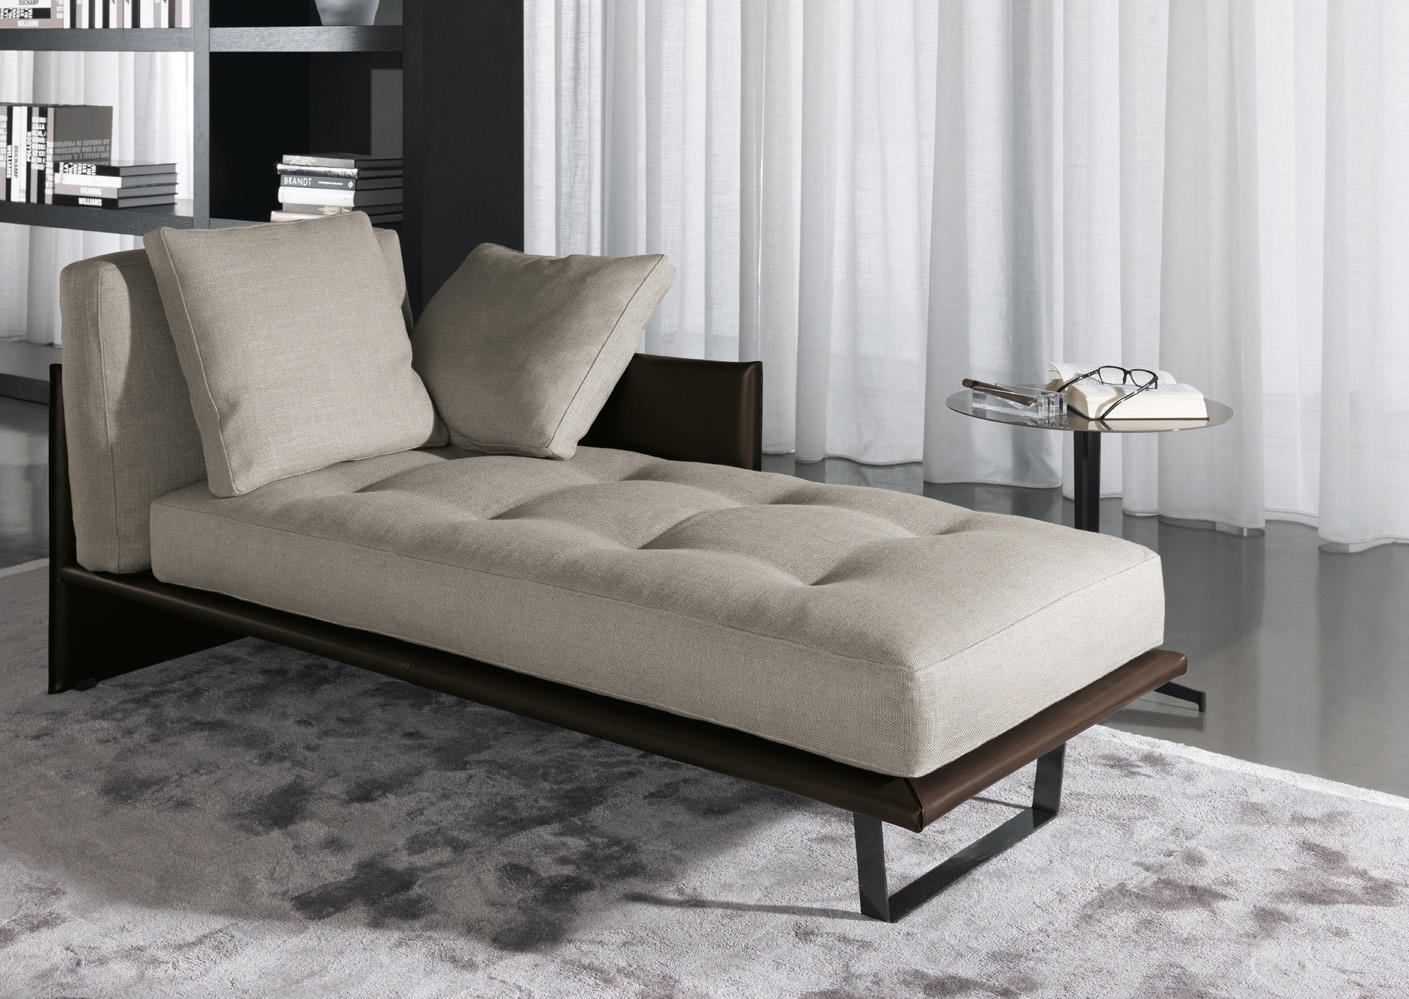 luggage recamieres from minotti architonic. Black Bedroom Furniture Sets. Home Design Ideas